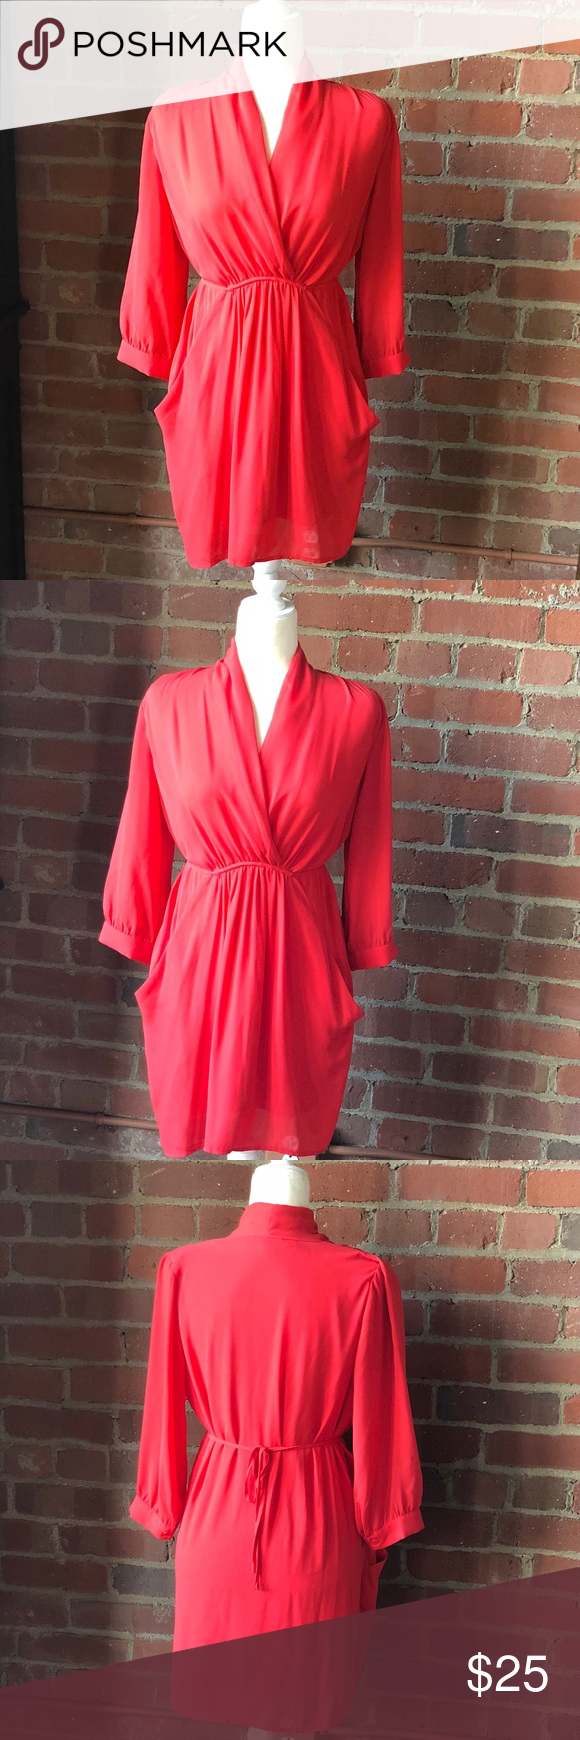 Collective concepts sleeve pockets tie dress in my posh